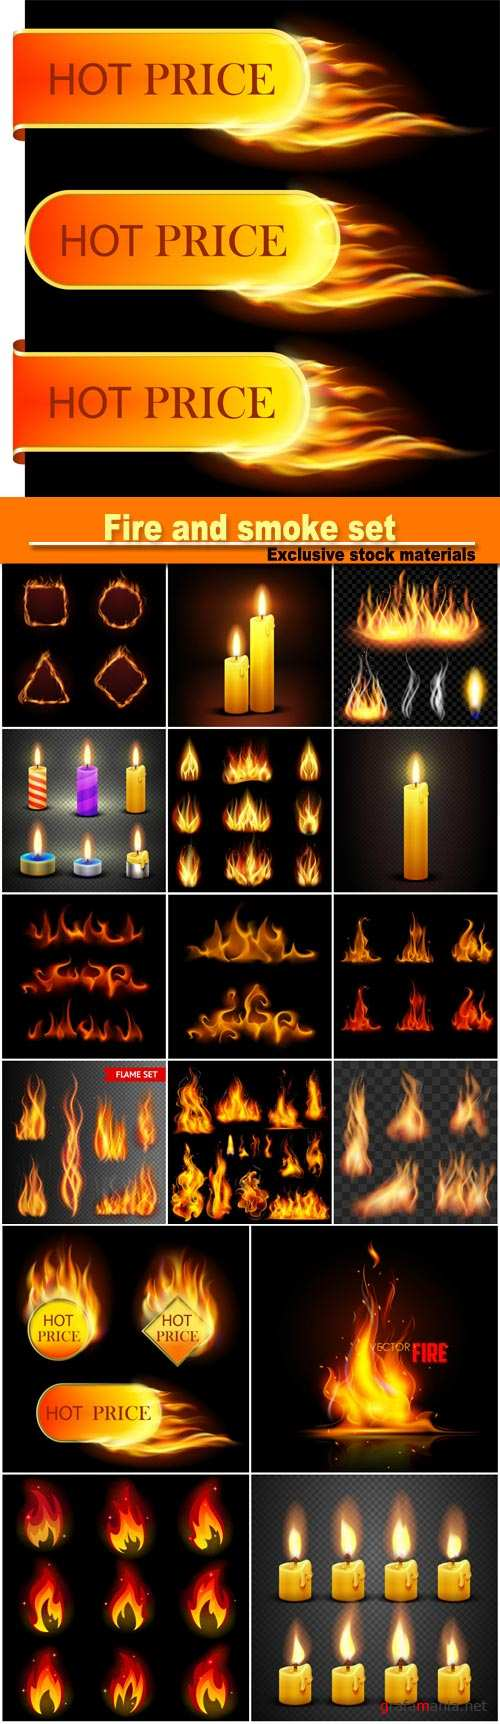 Fire and smoke set on translucent background, different candles